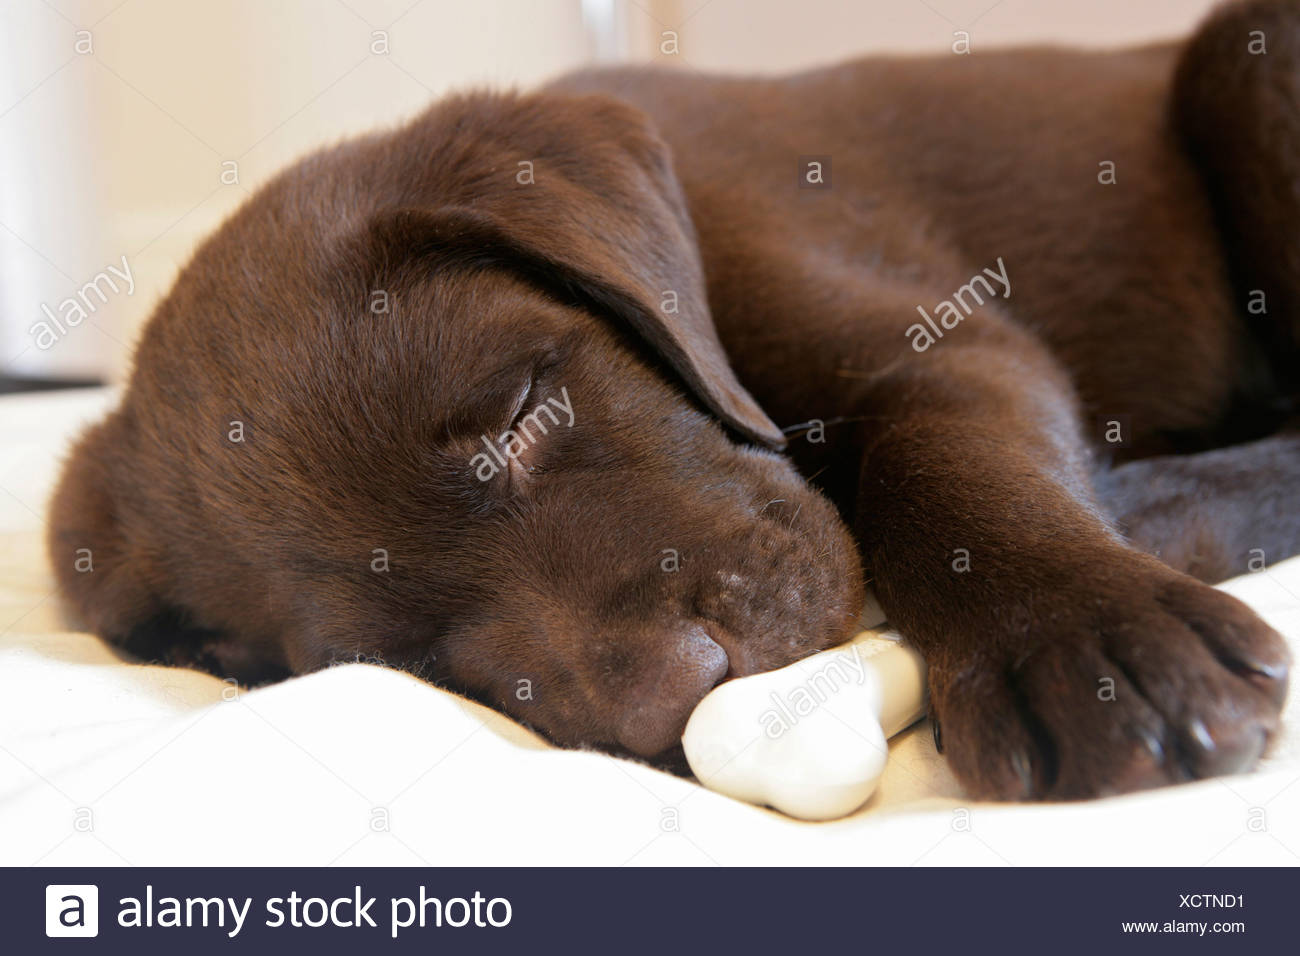 Labrador Retriever dog puppy sleeping bone - Stock Image